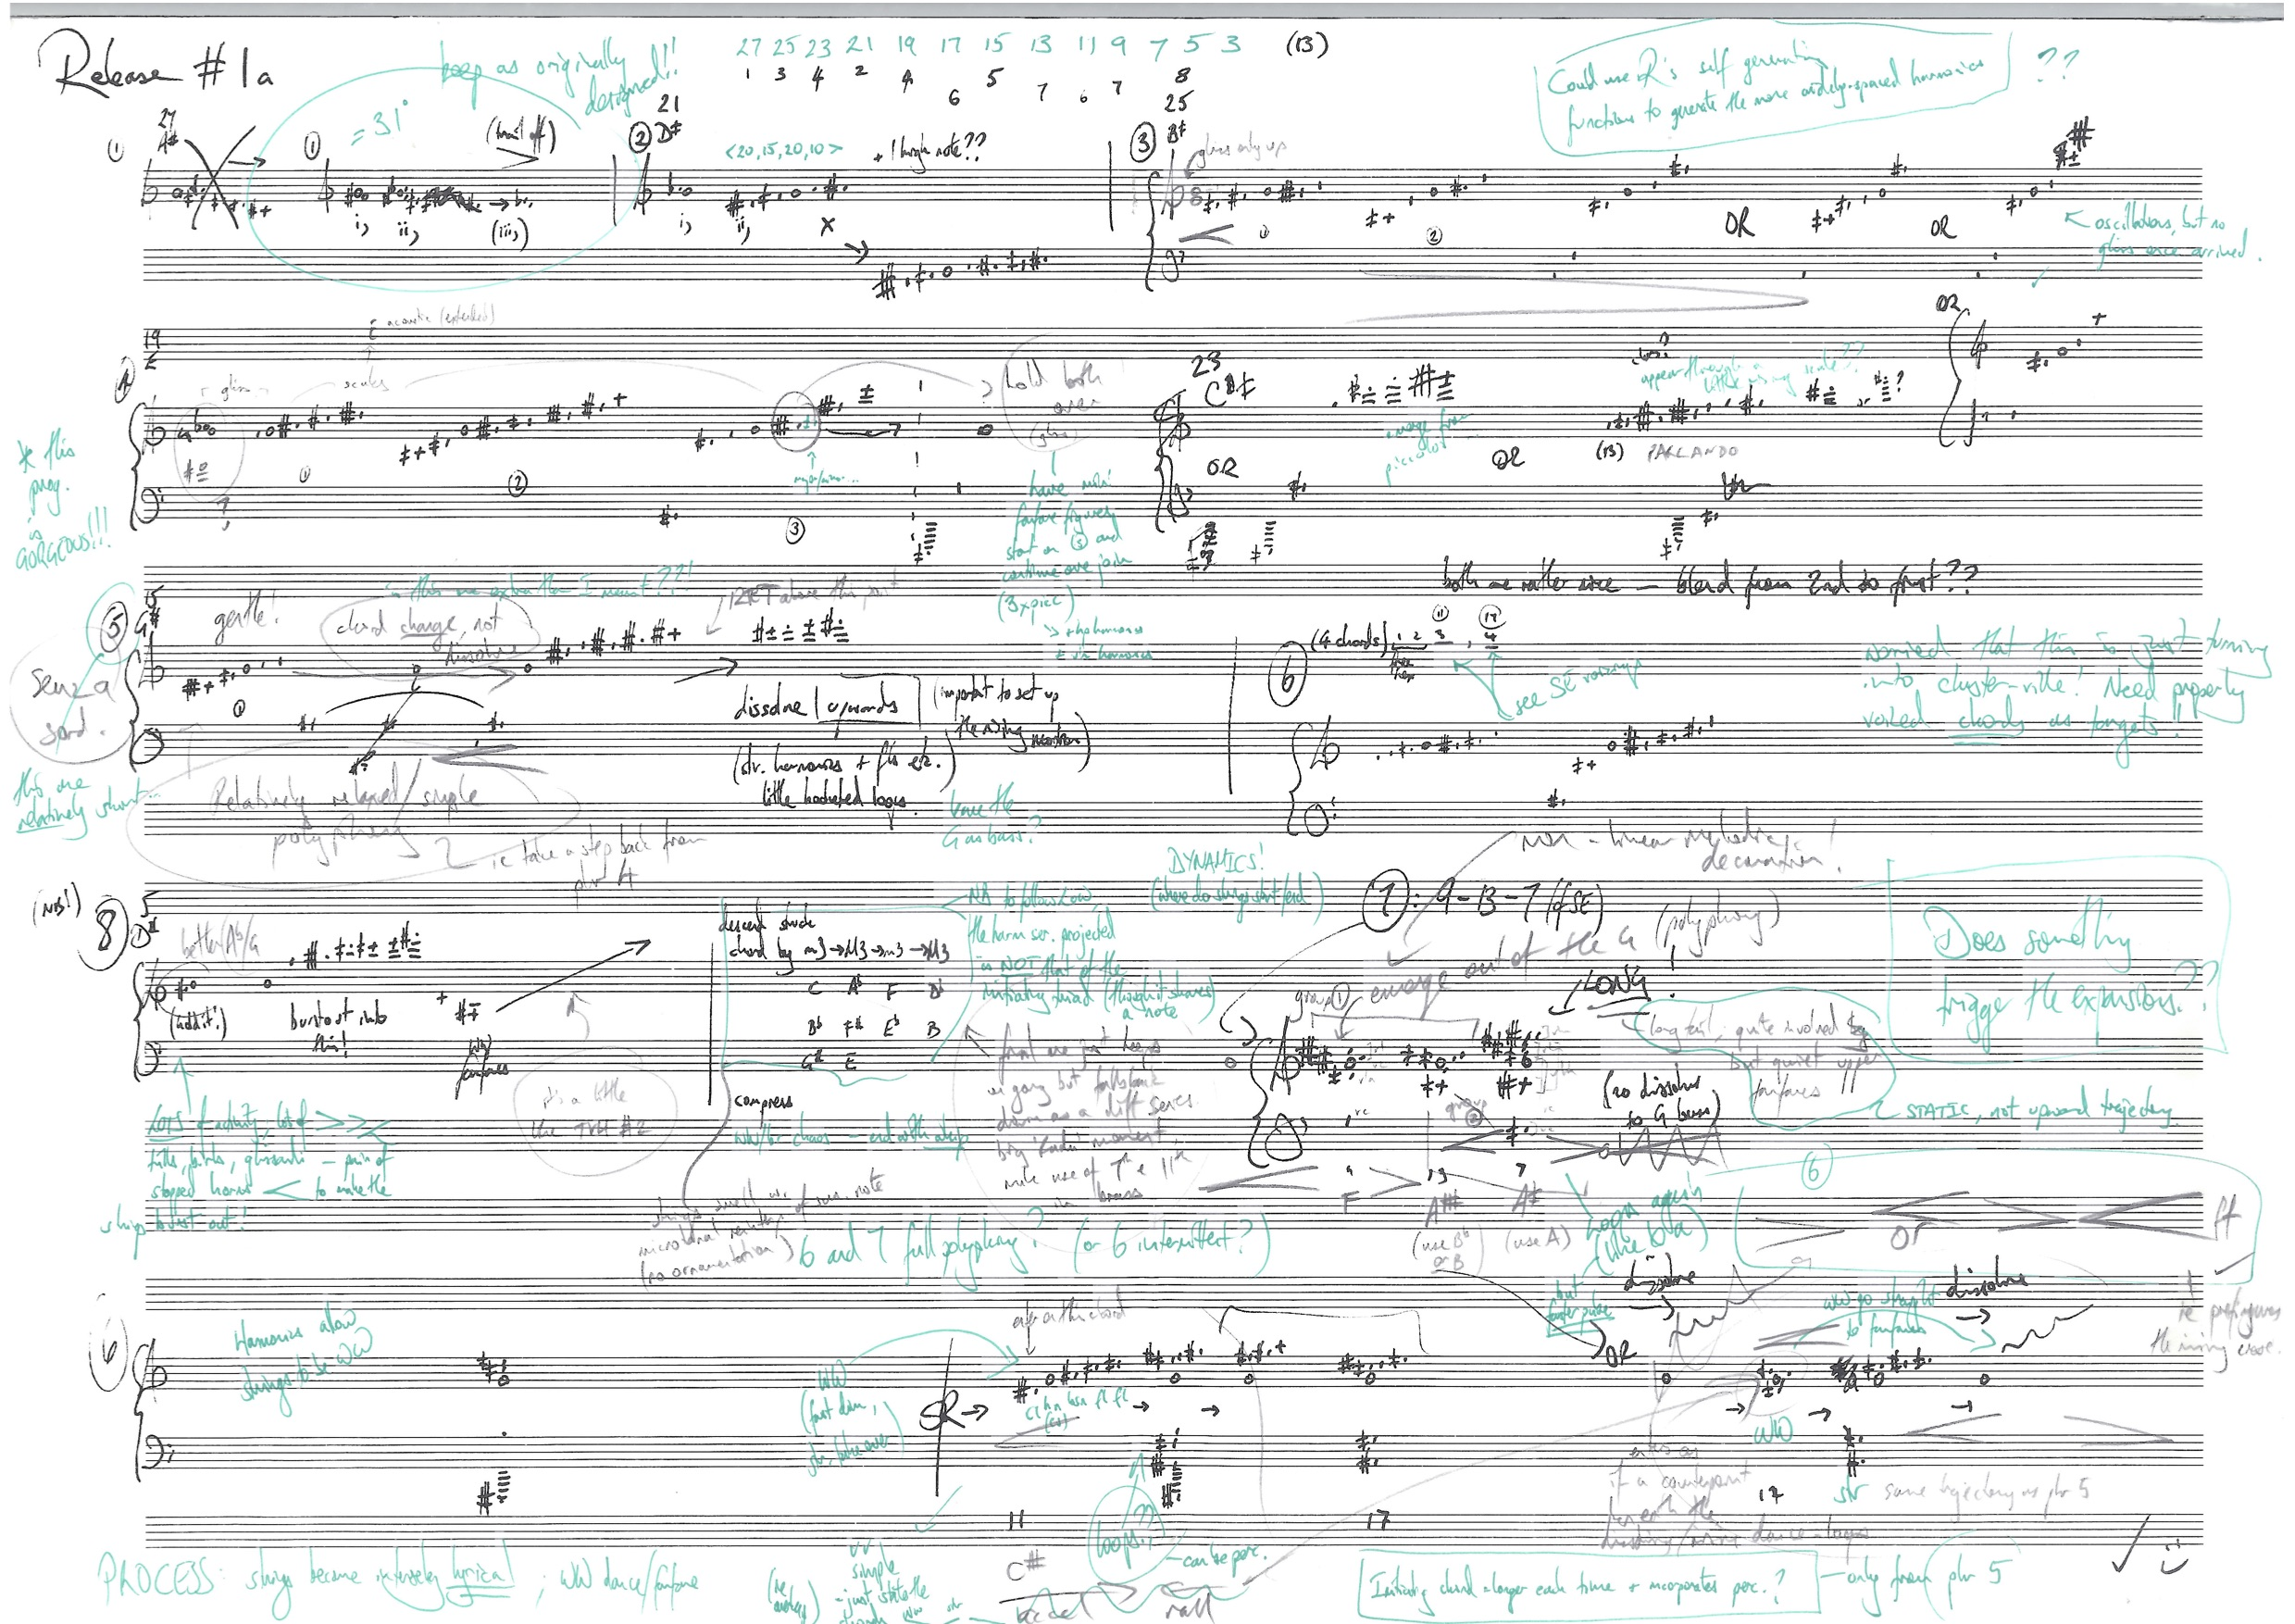 Sketch for the opening of a big orchestral piece